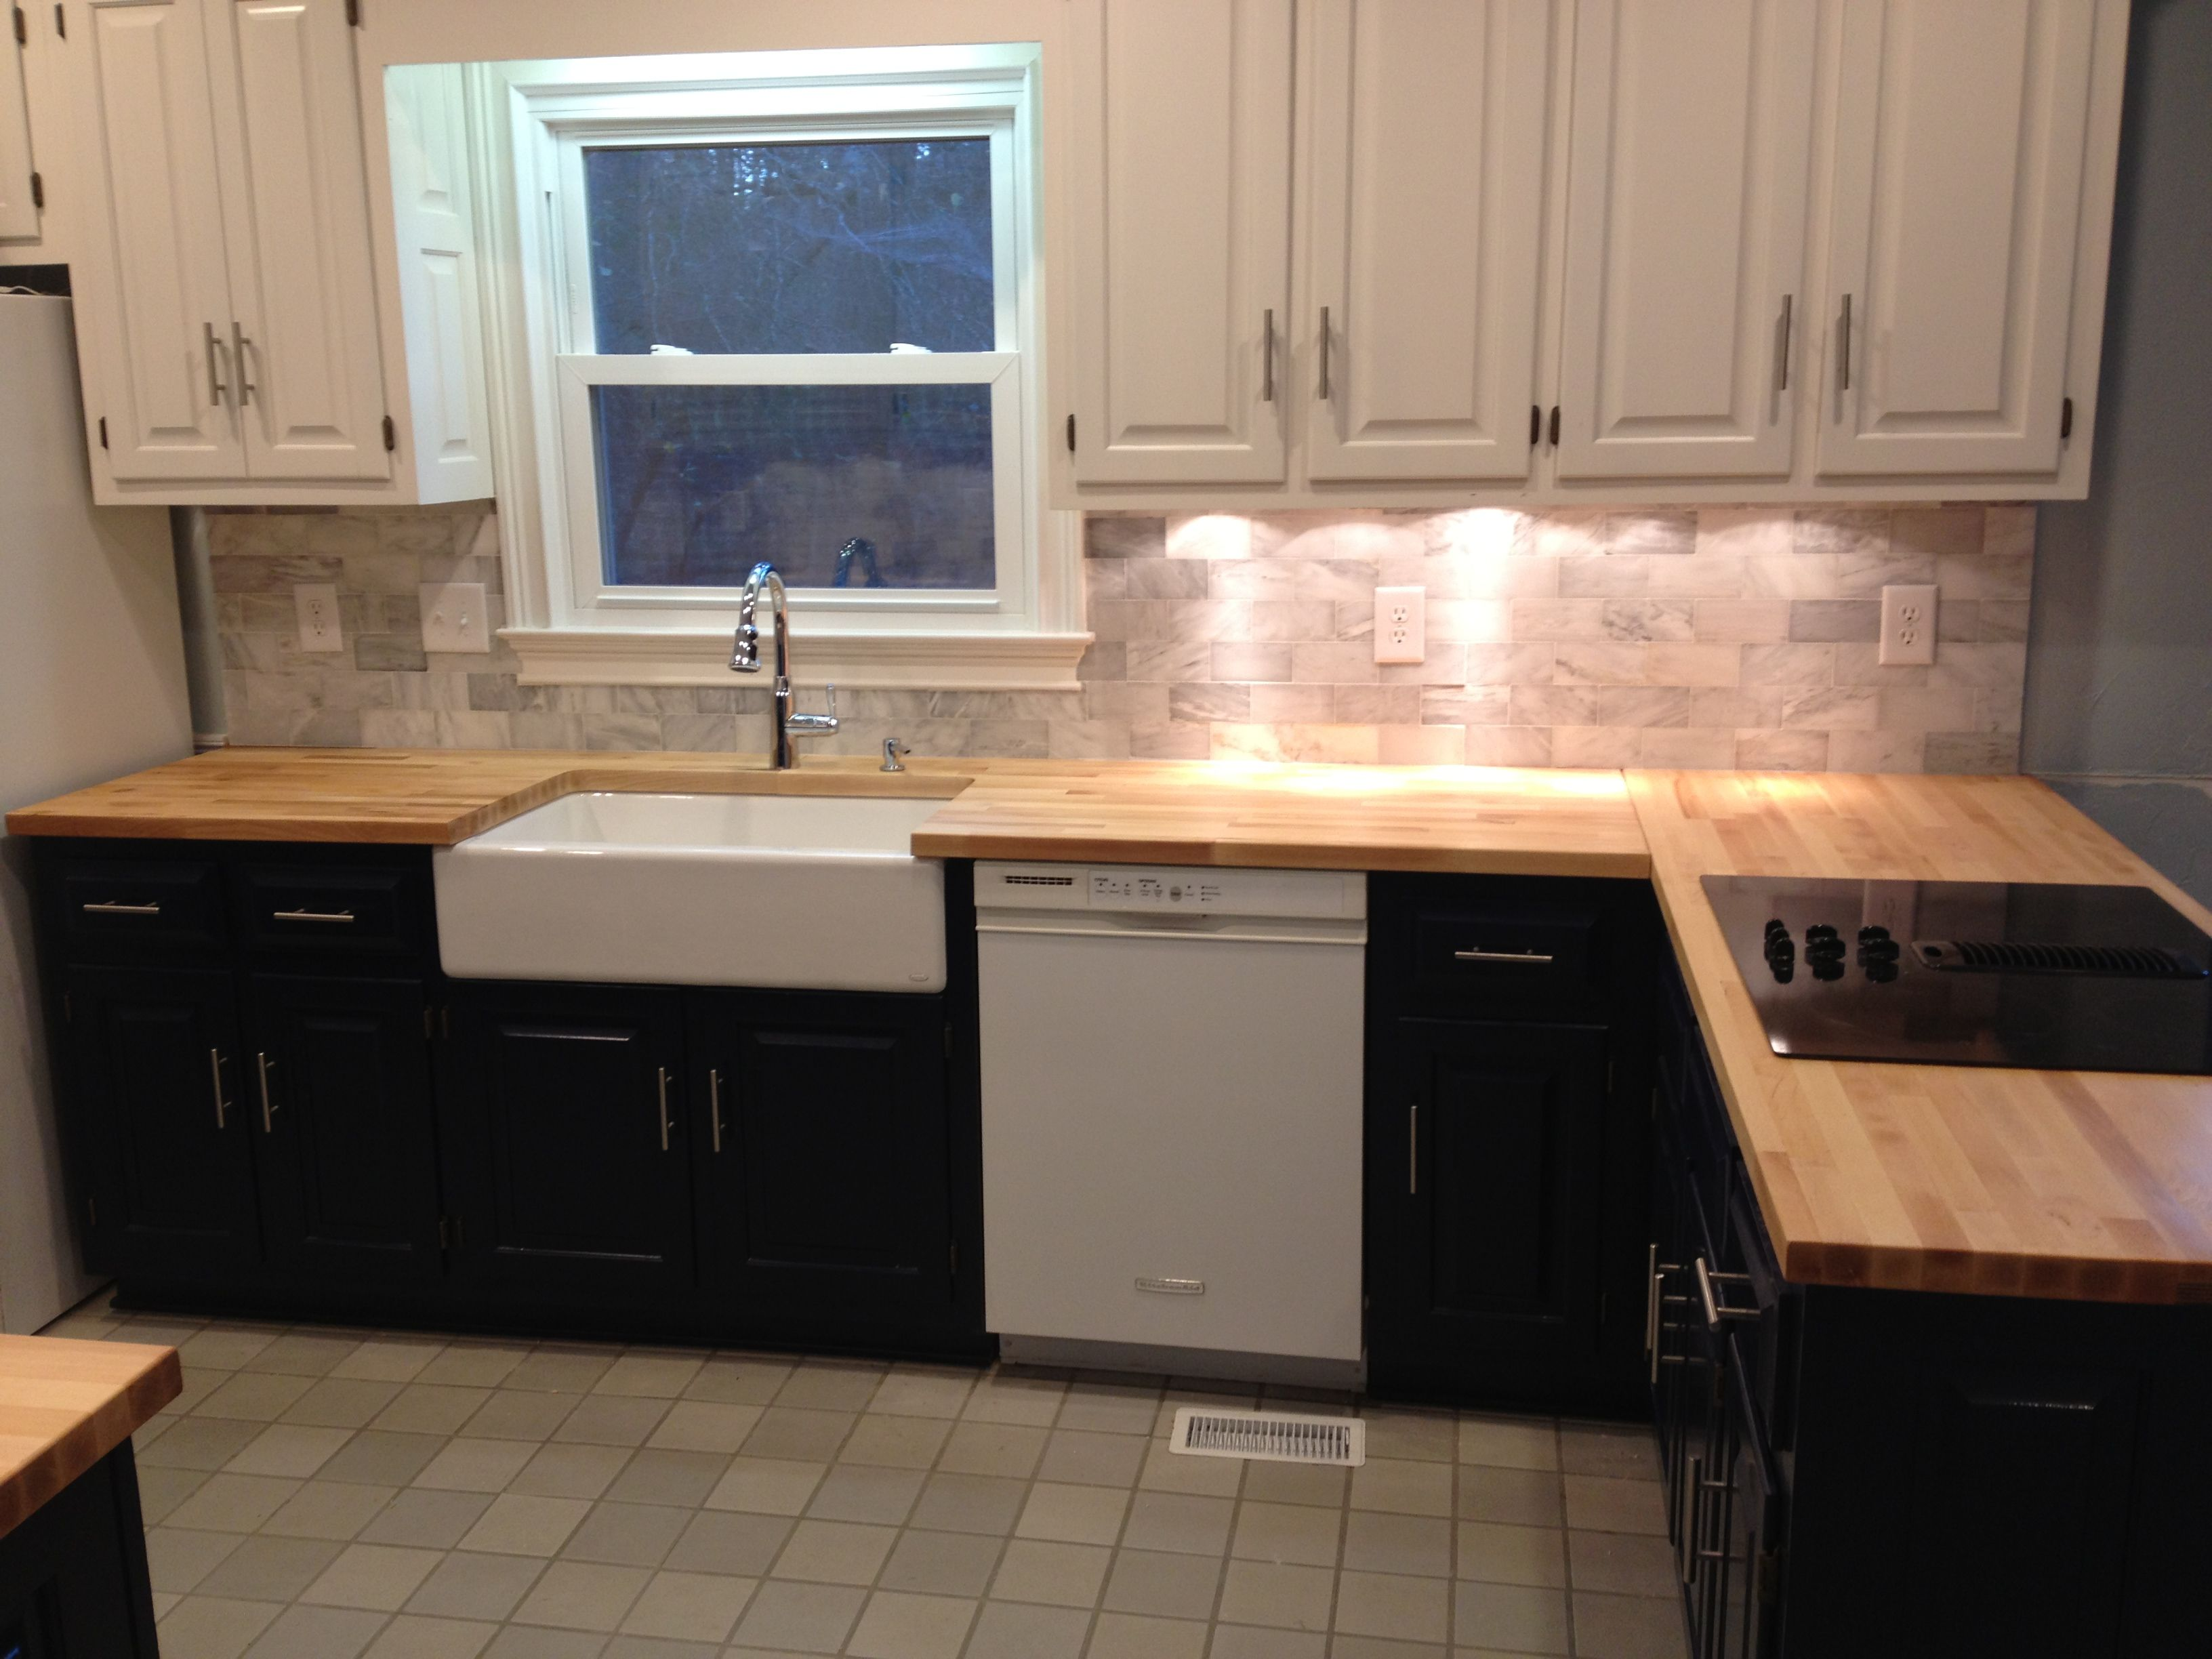 Kitchen remodel - we used Butcher Block counter tops